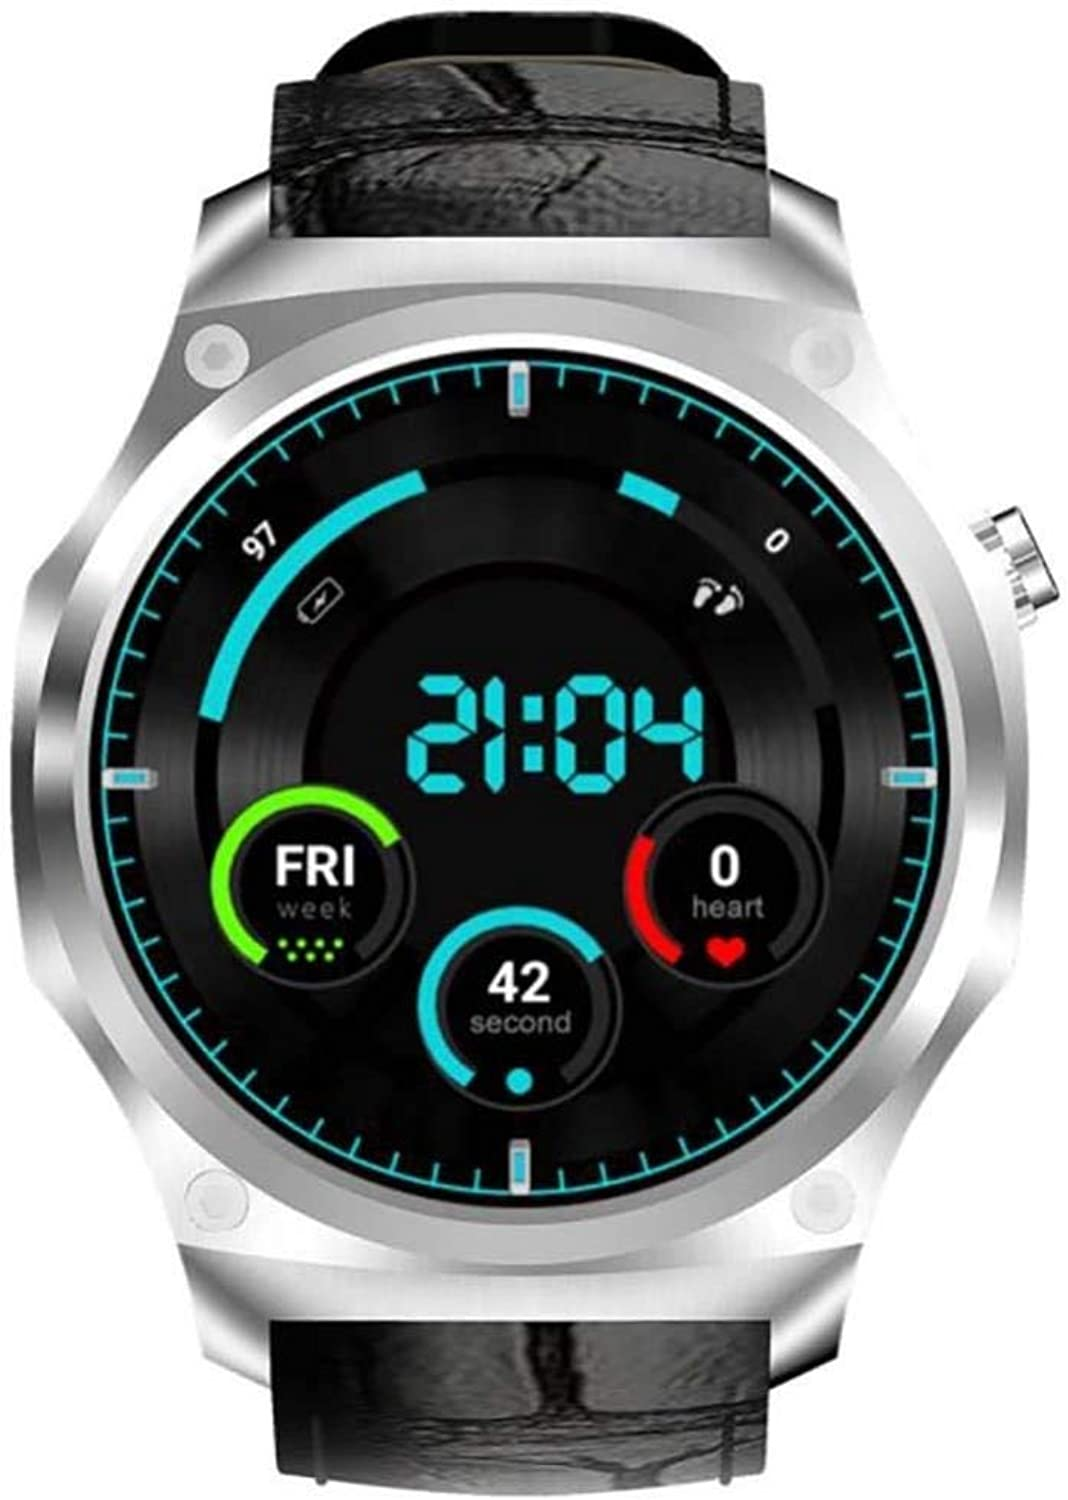 SIECPC Smart Watch Outdoor-Sportarten Android 5.1 Edelstahl WiFi Herzfrequenz GPS Positionierung Business 16G Wasserdichte Sportuhr